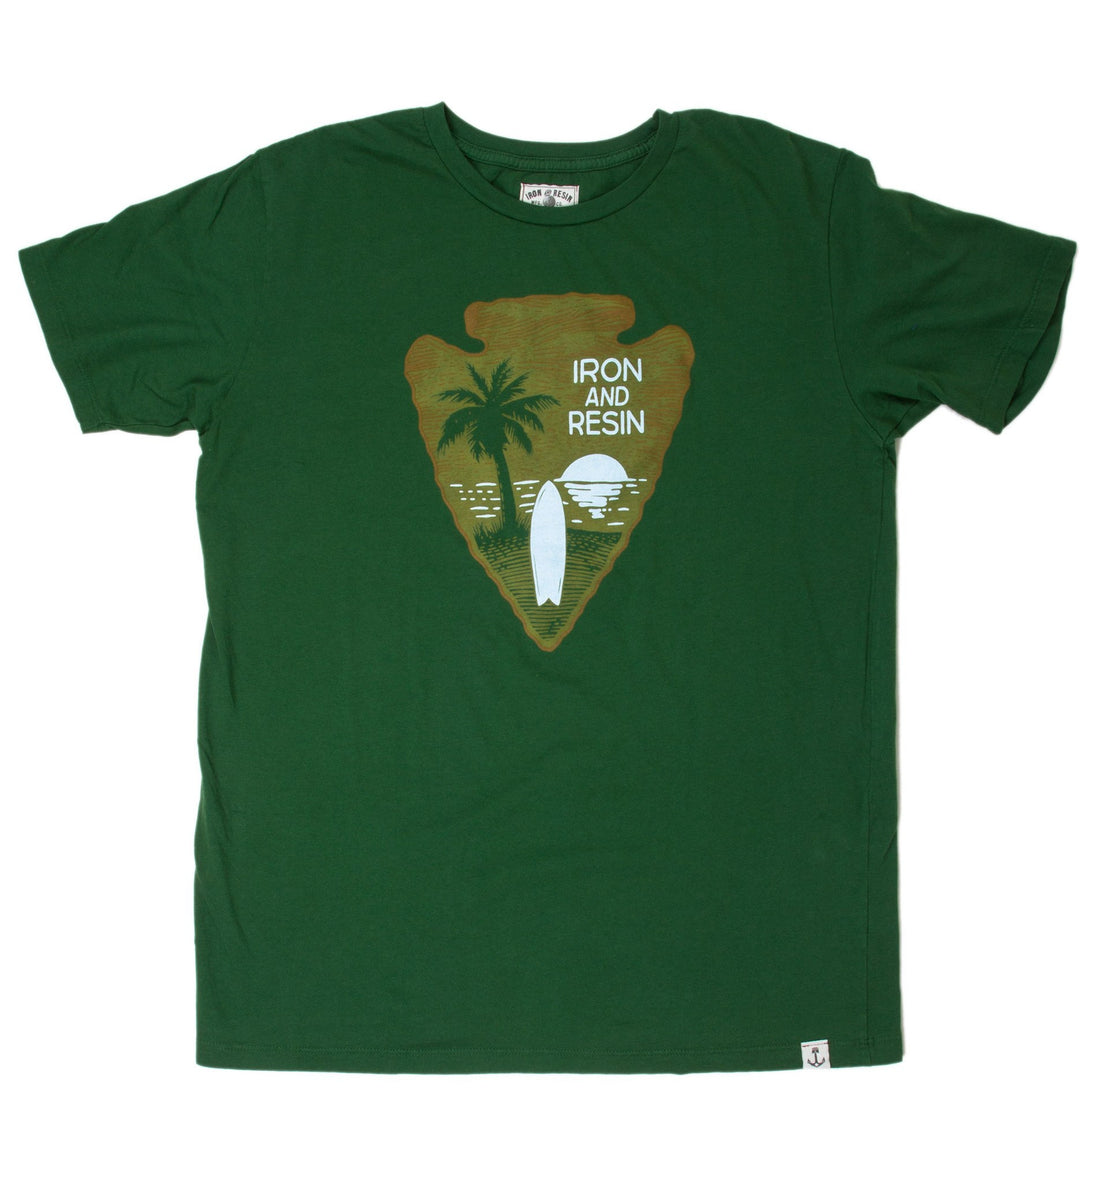 INR NPS Tee - Apparel: Men's: Graphic T-Shirts - Iron and Resin